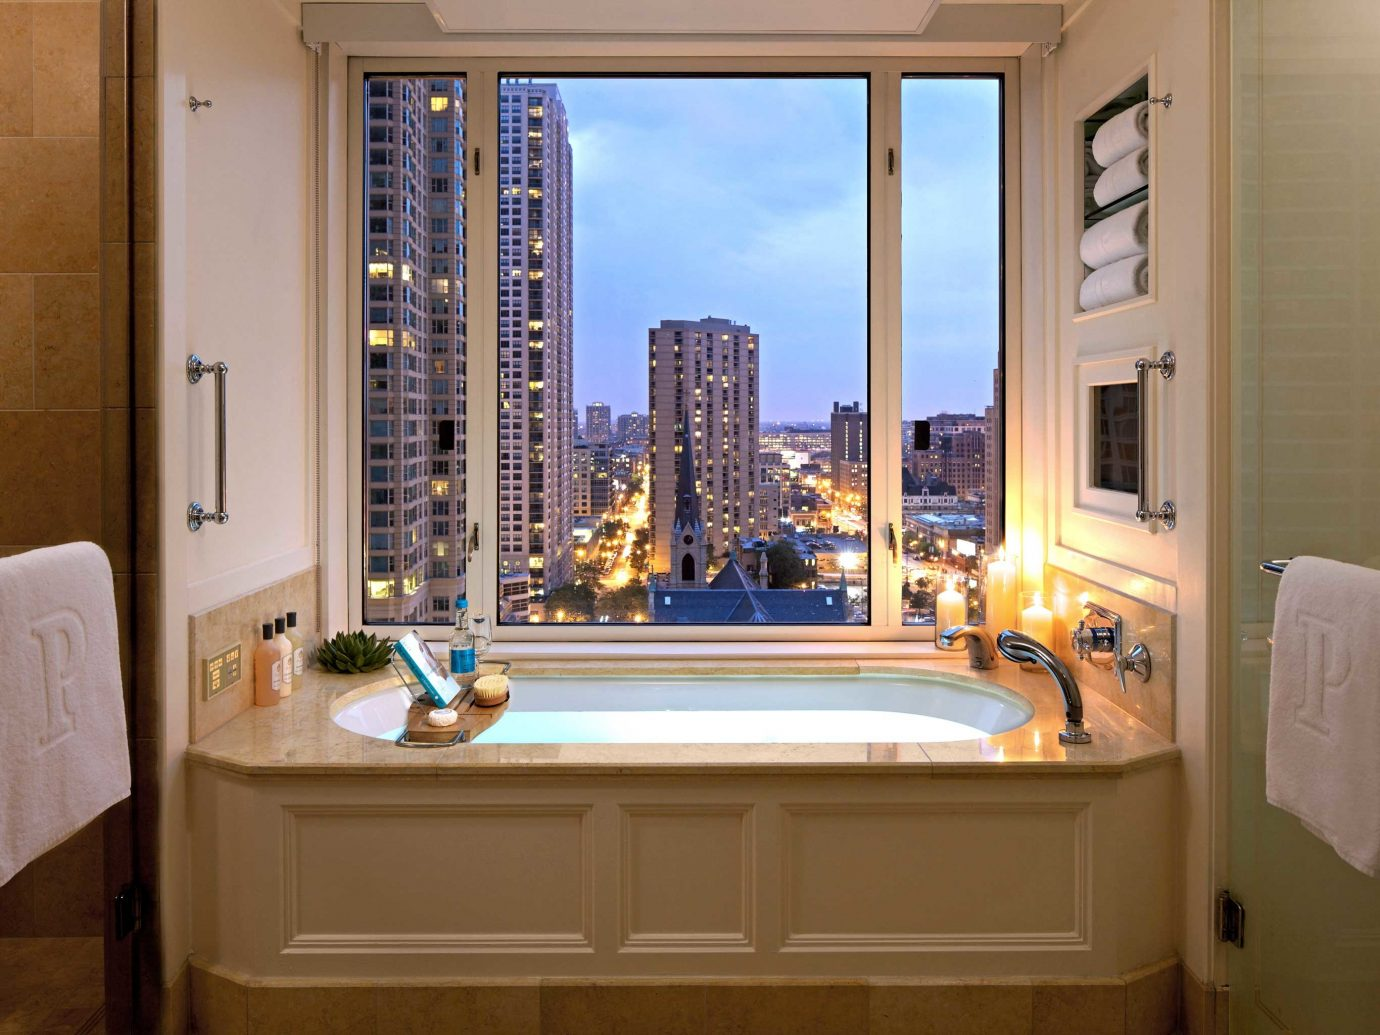 Bathroom at Peninsula Chicago